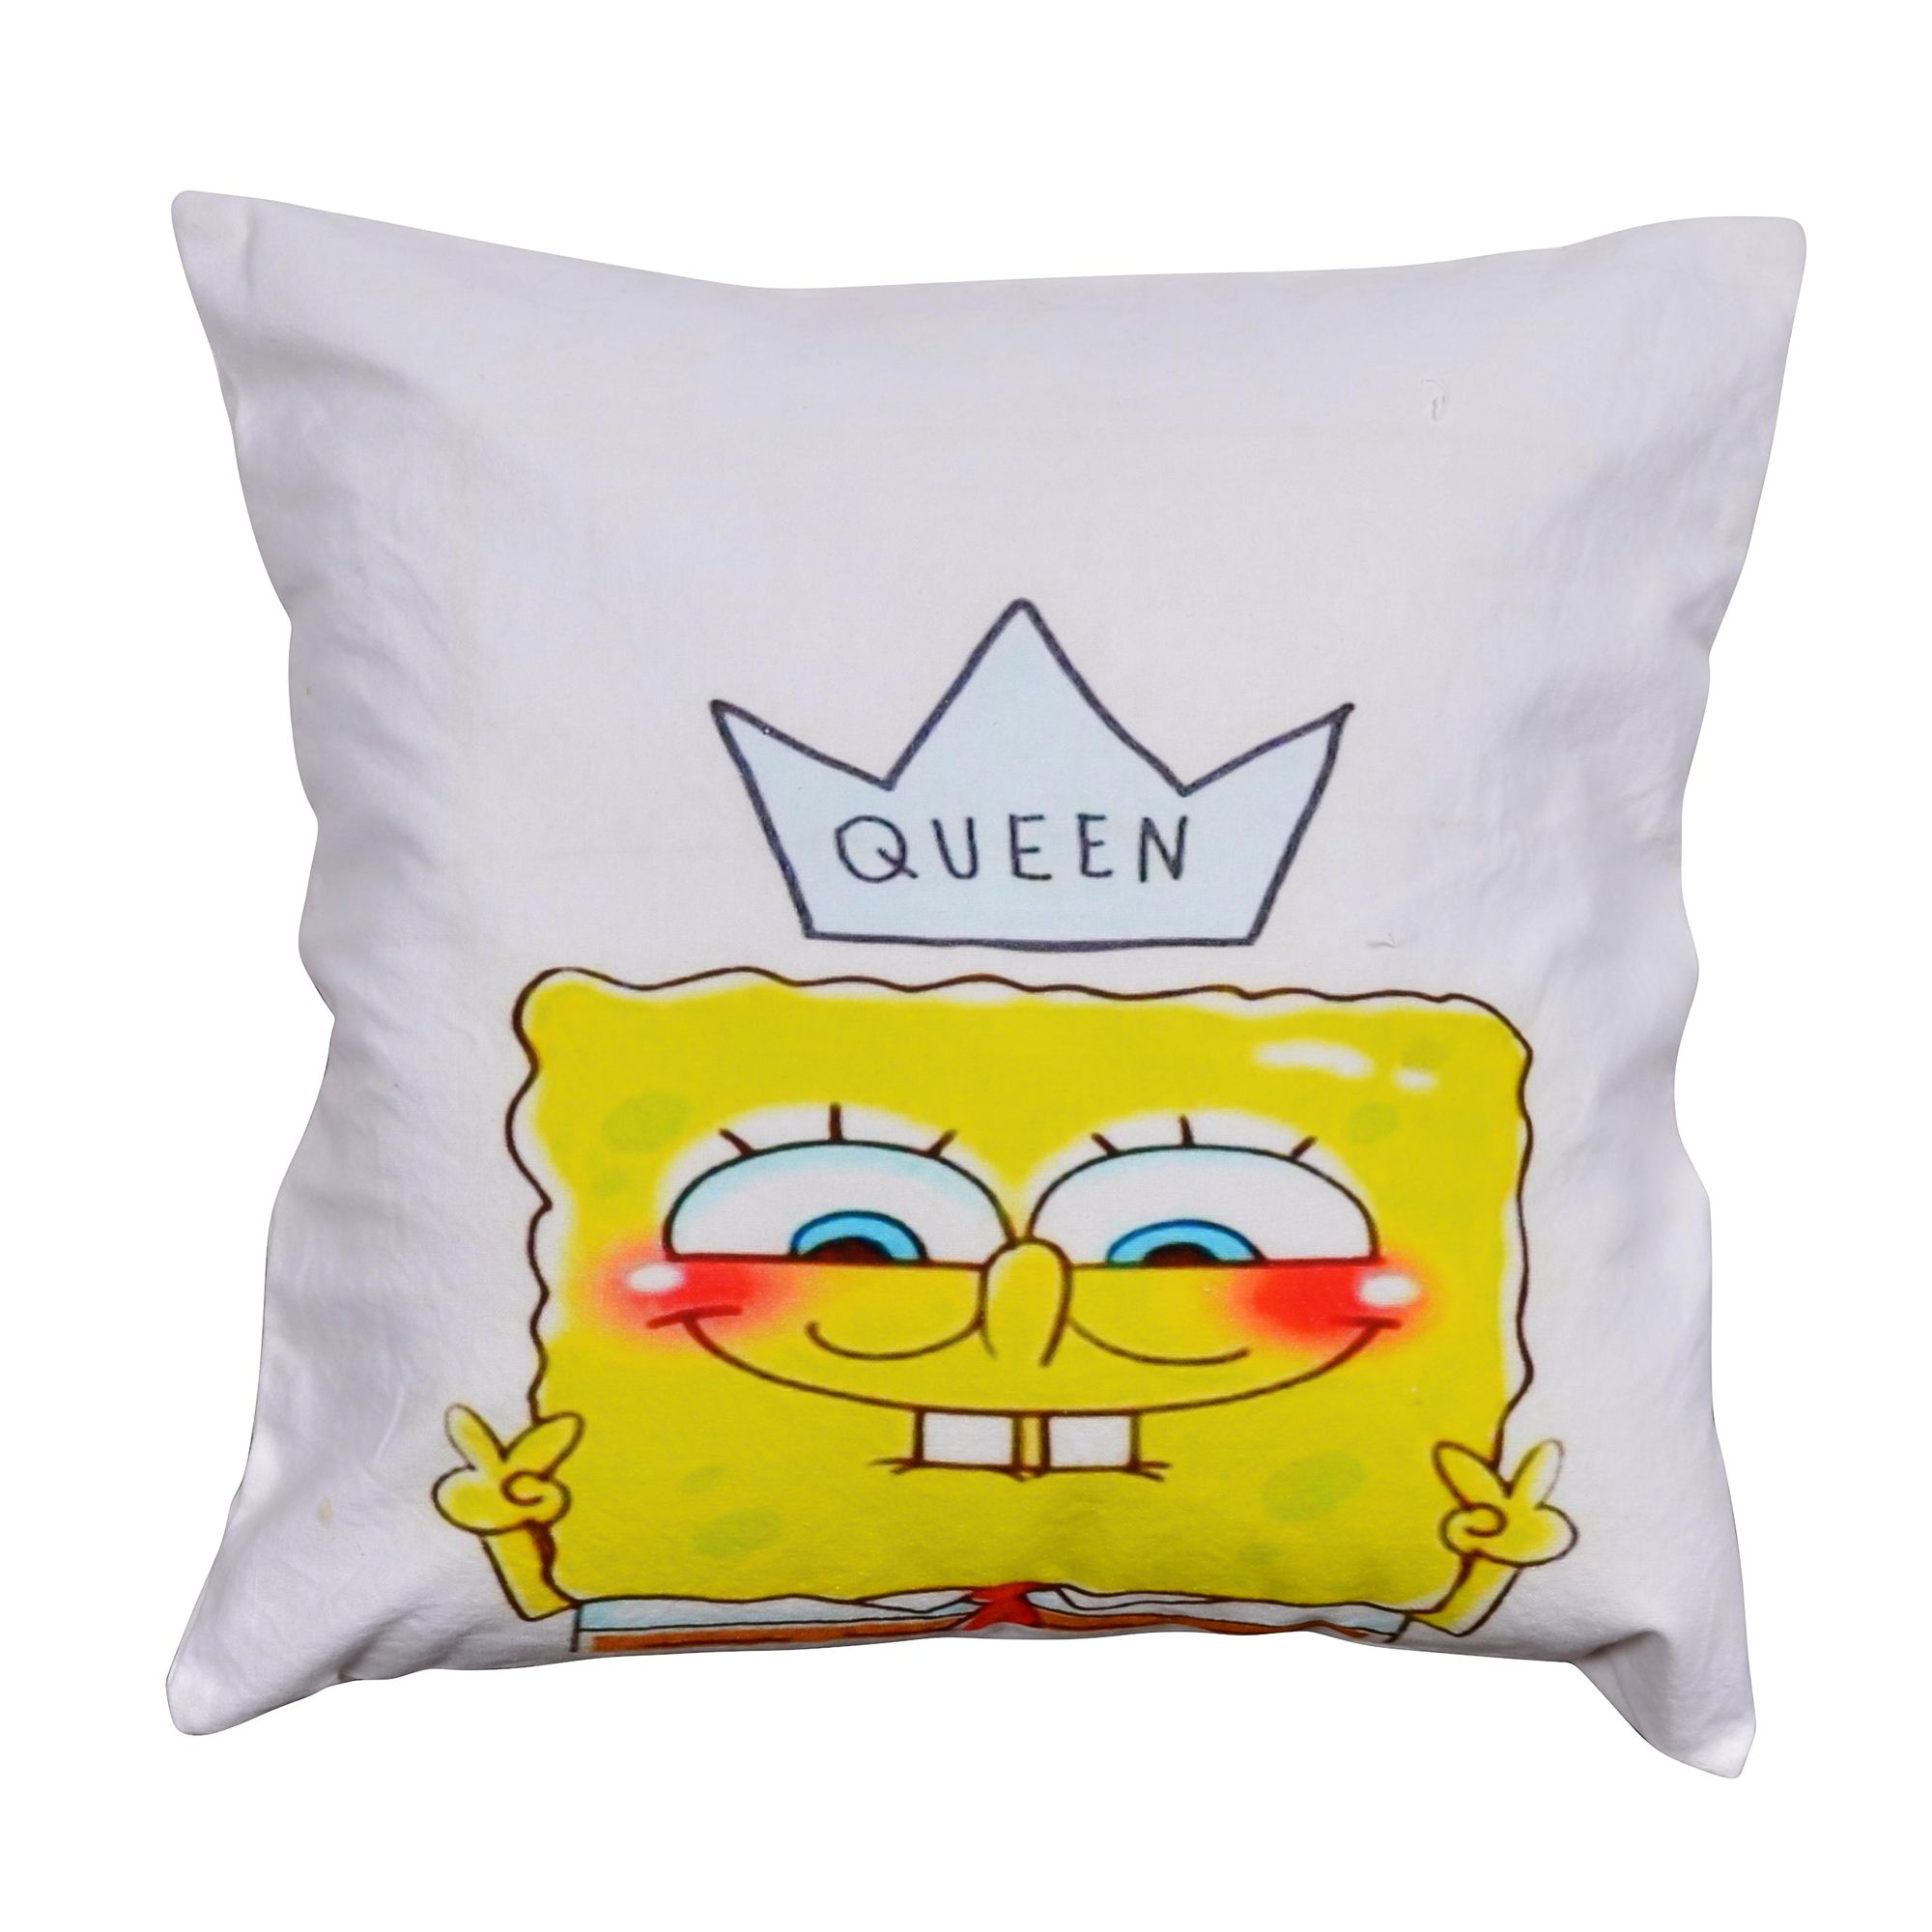 "Queen Spongebob 16"" Cushion Cover"